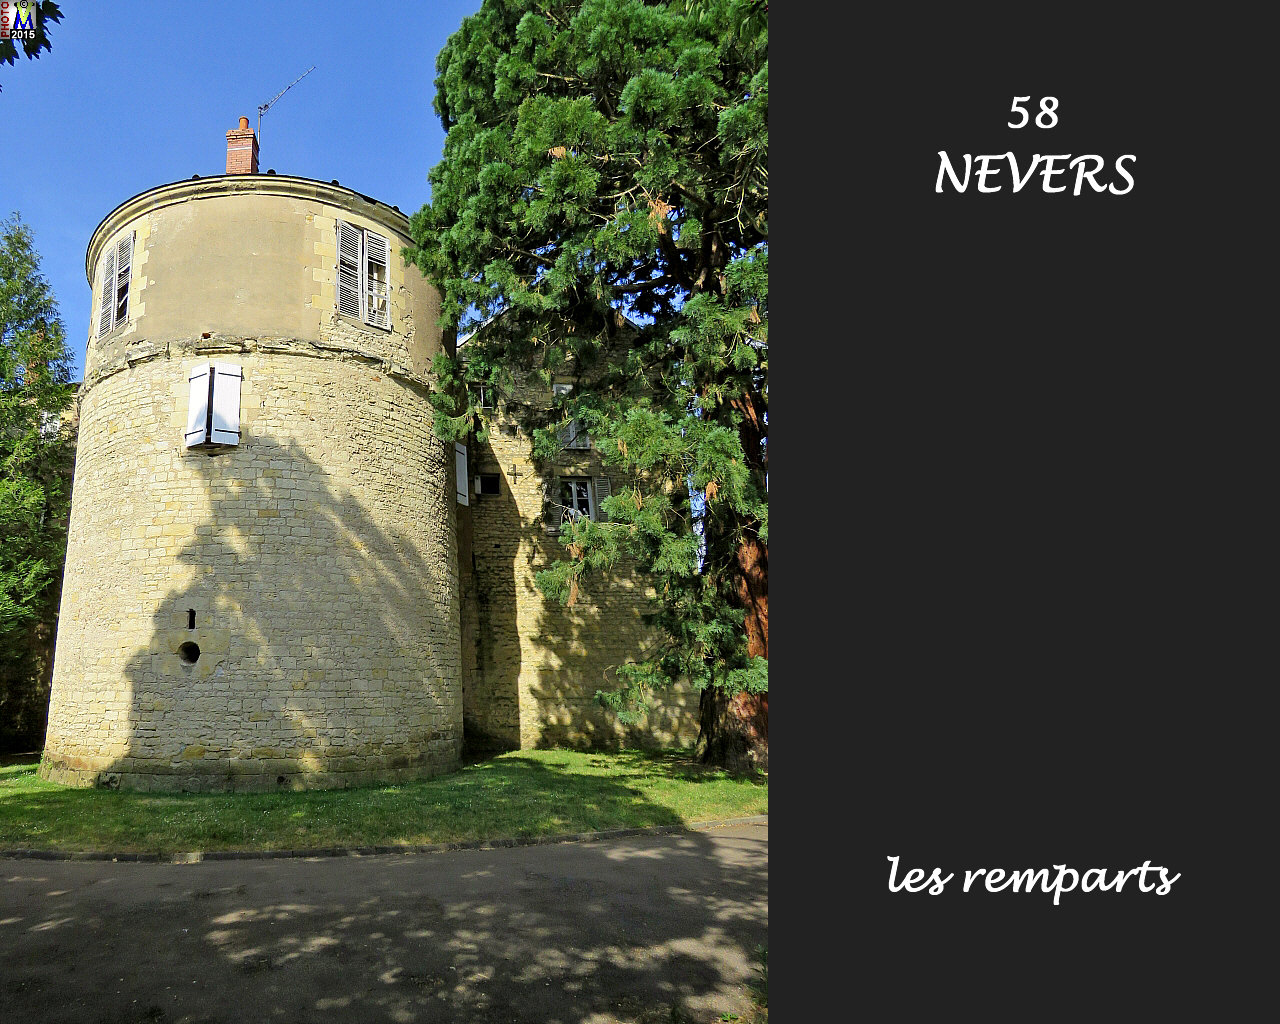 58NEVERS-remparts_104.jpg